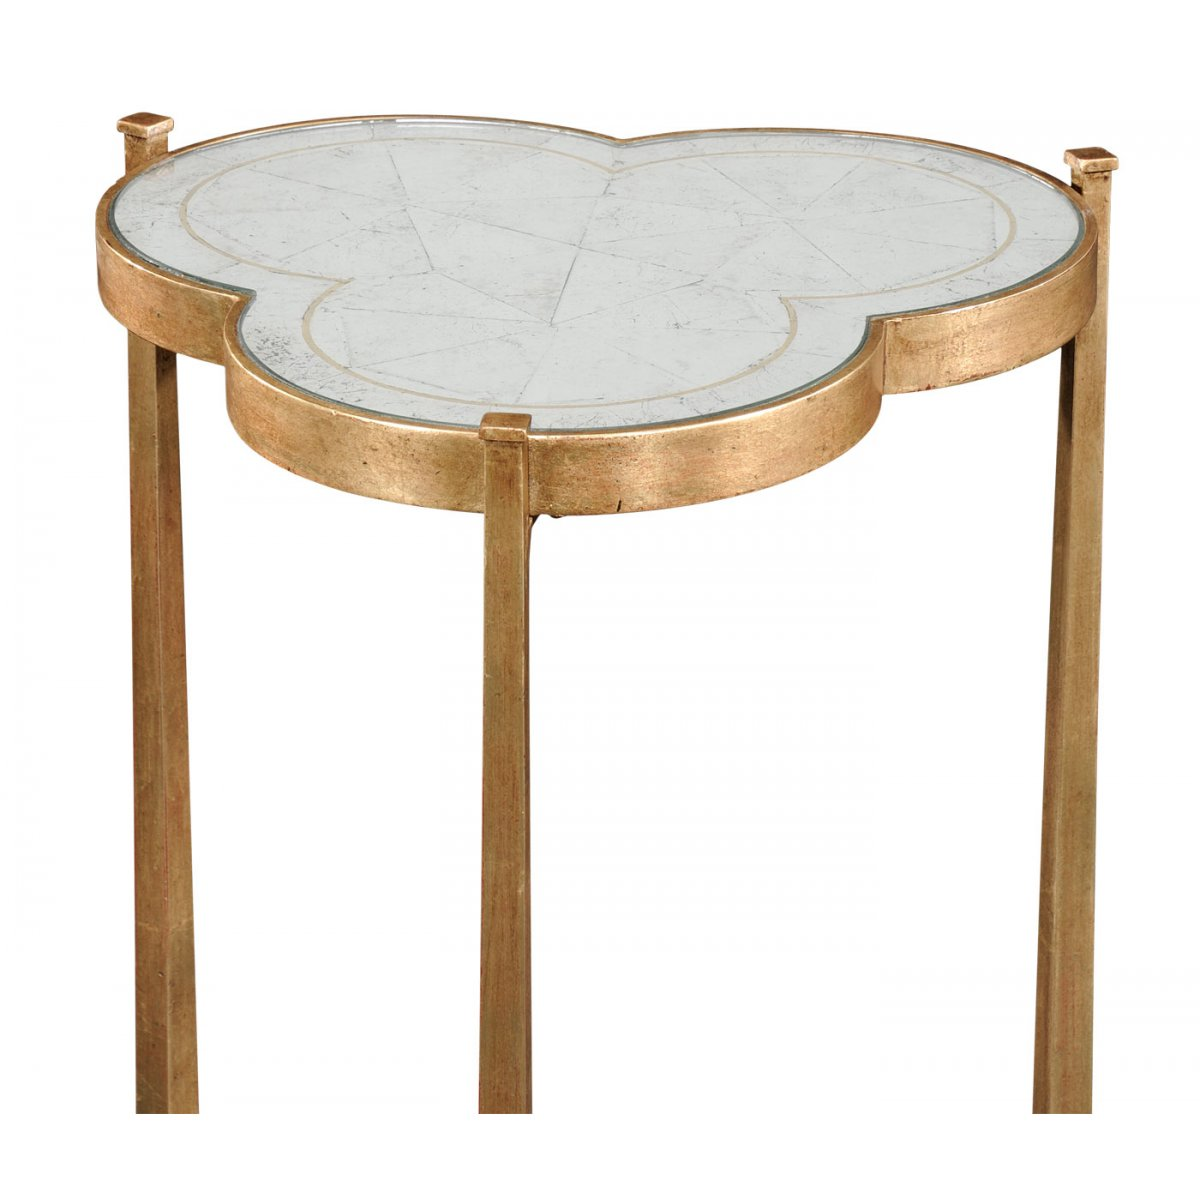 mirrored side table gold swanky interiors. Black Bedroom Furniture Sets. Home Design Ideas